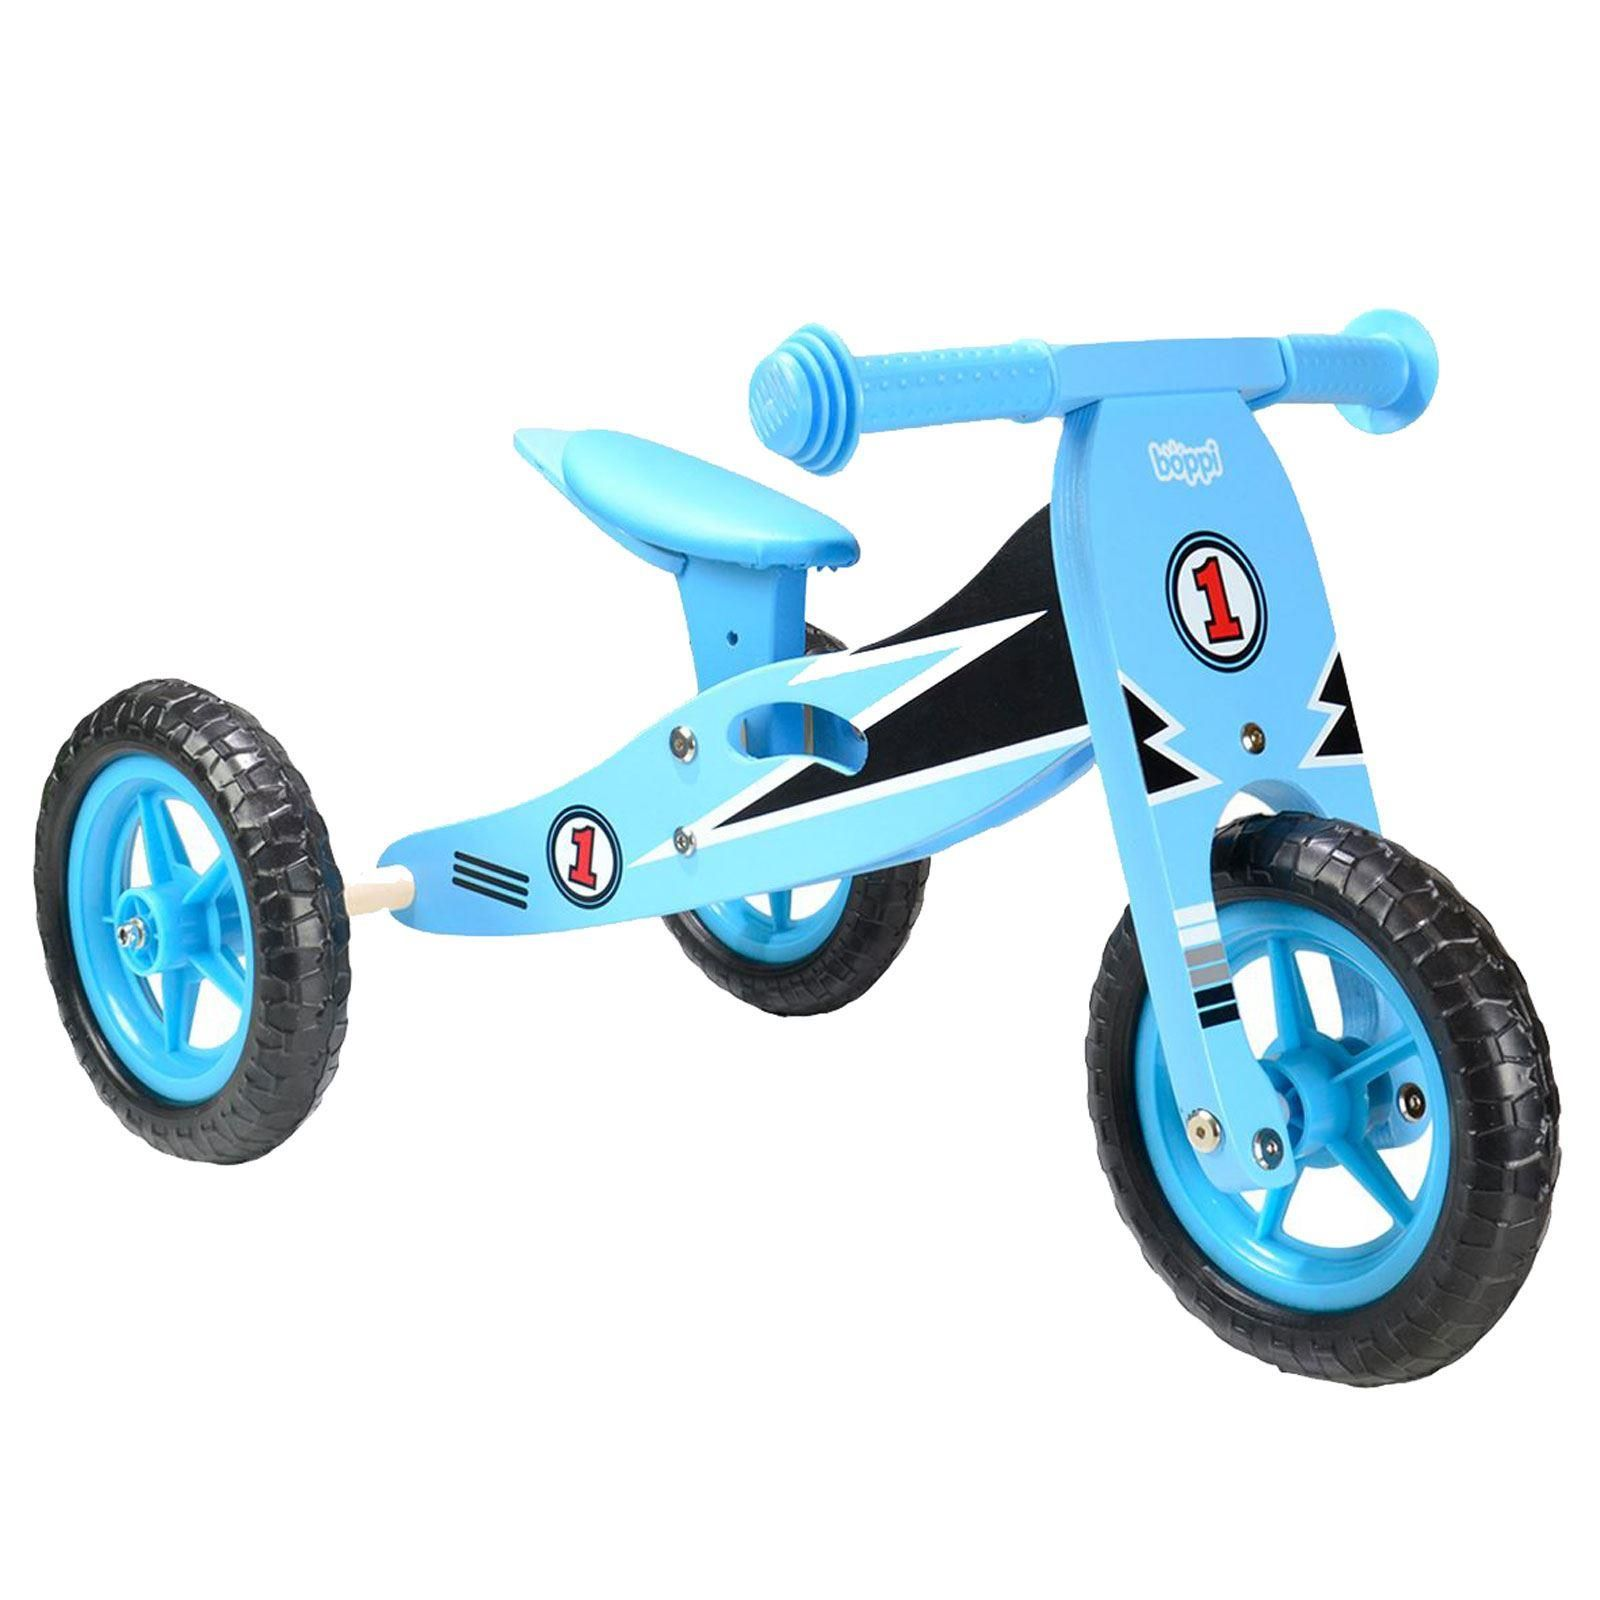 boppi® 2 in 1 Wooden Trike & Balance bike by bopster - Blue